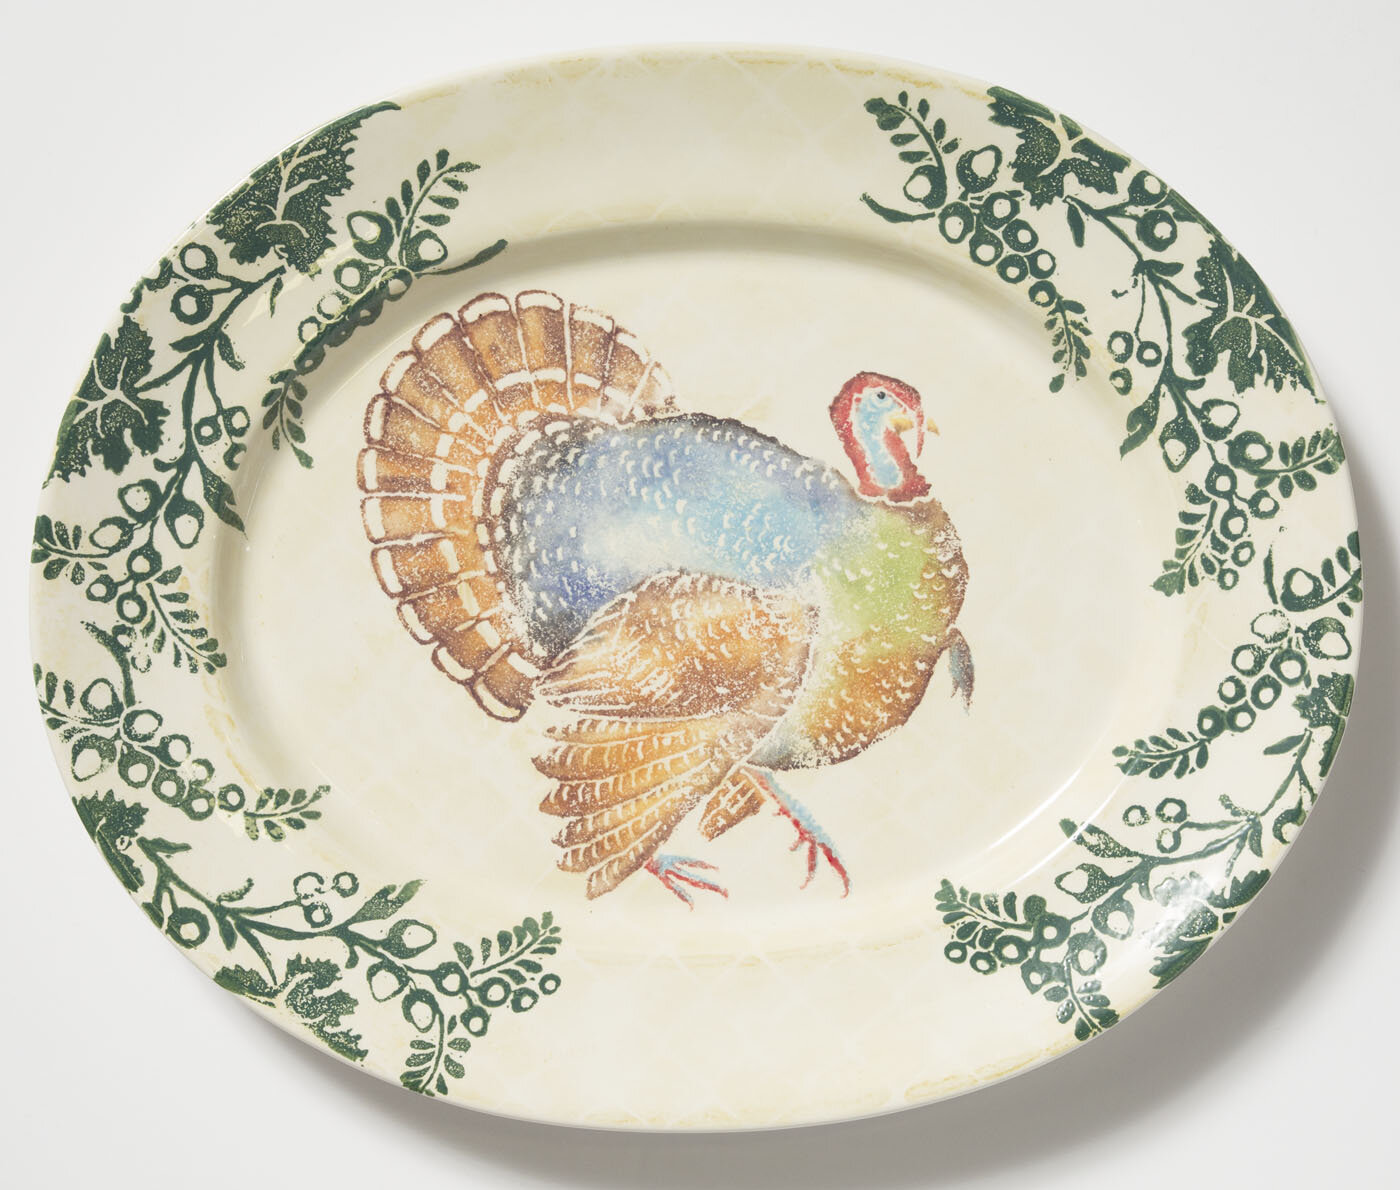 & VIETRI Gather Turkey Large Oval Decorative Plate | Wayfair